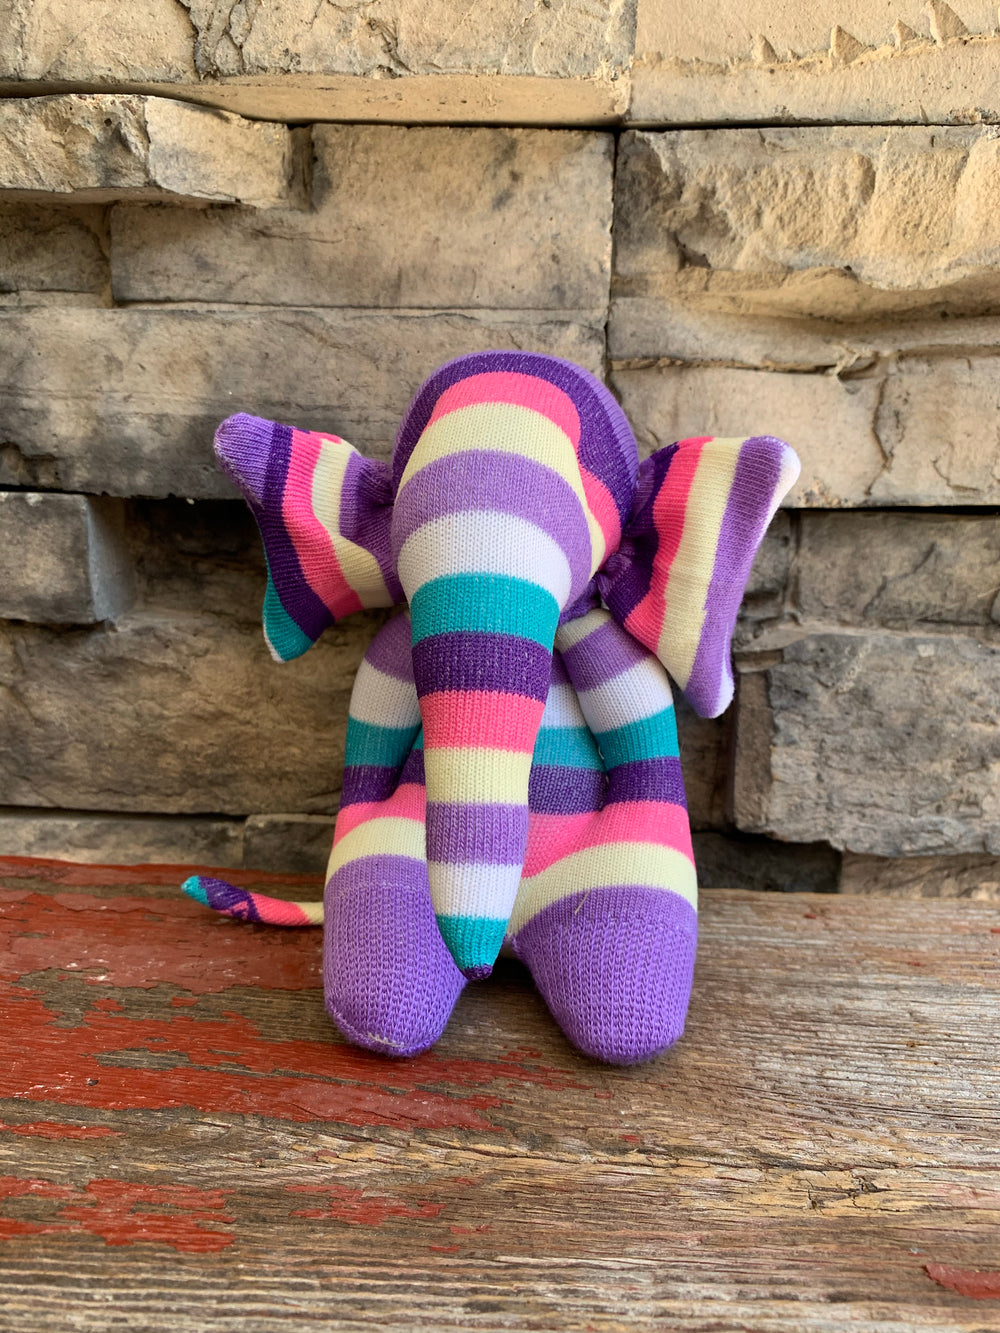 Sock Animals by White Peacock from India